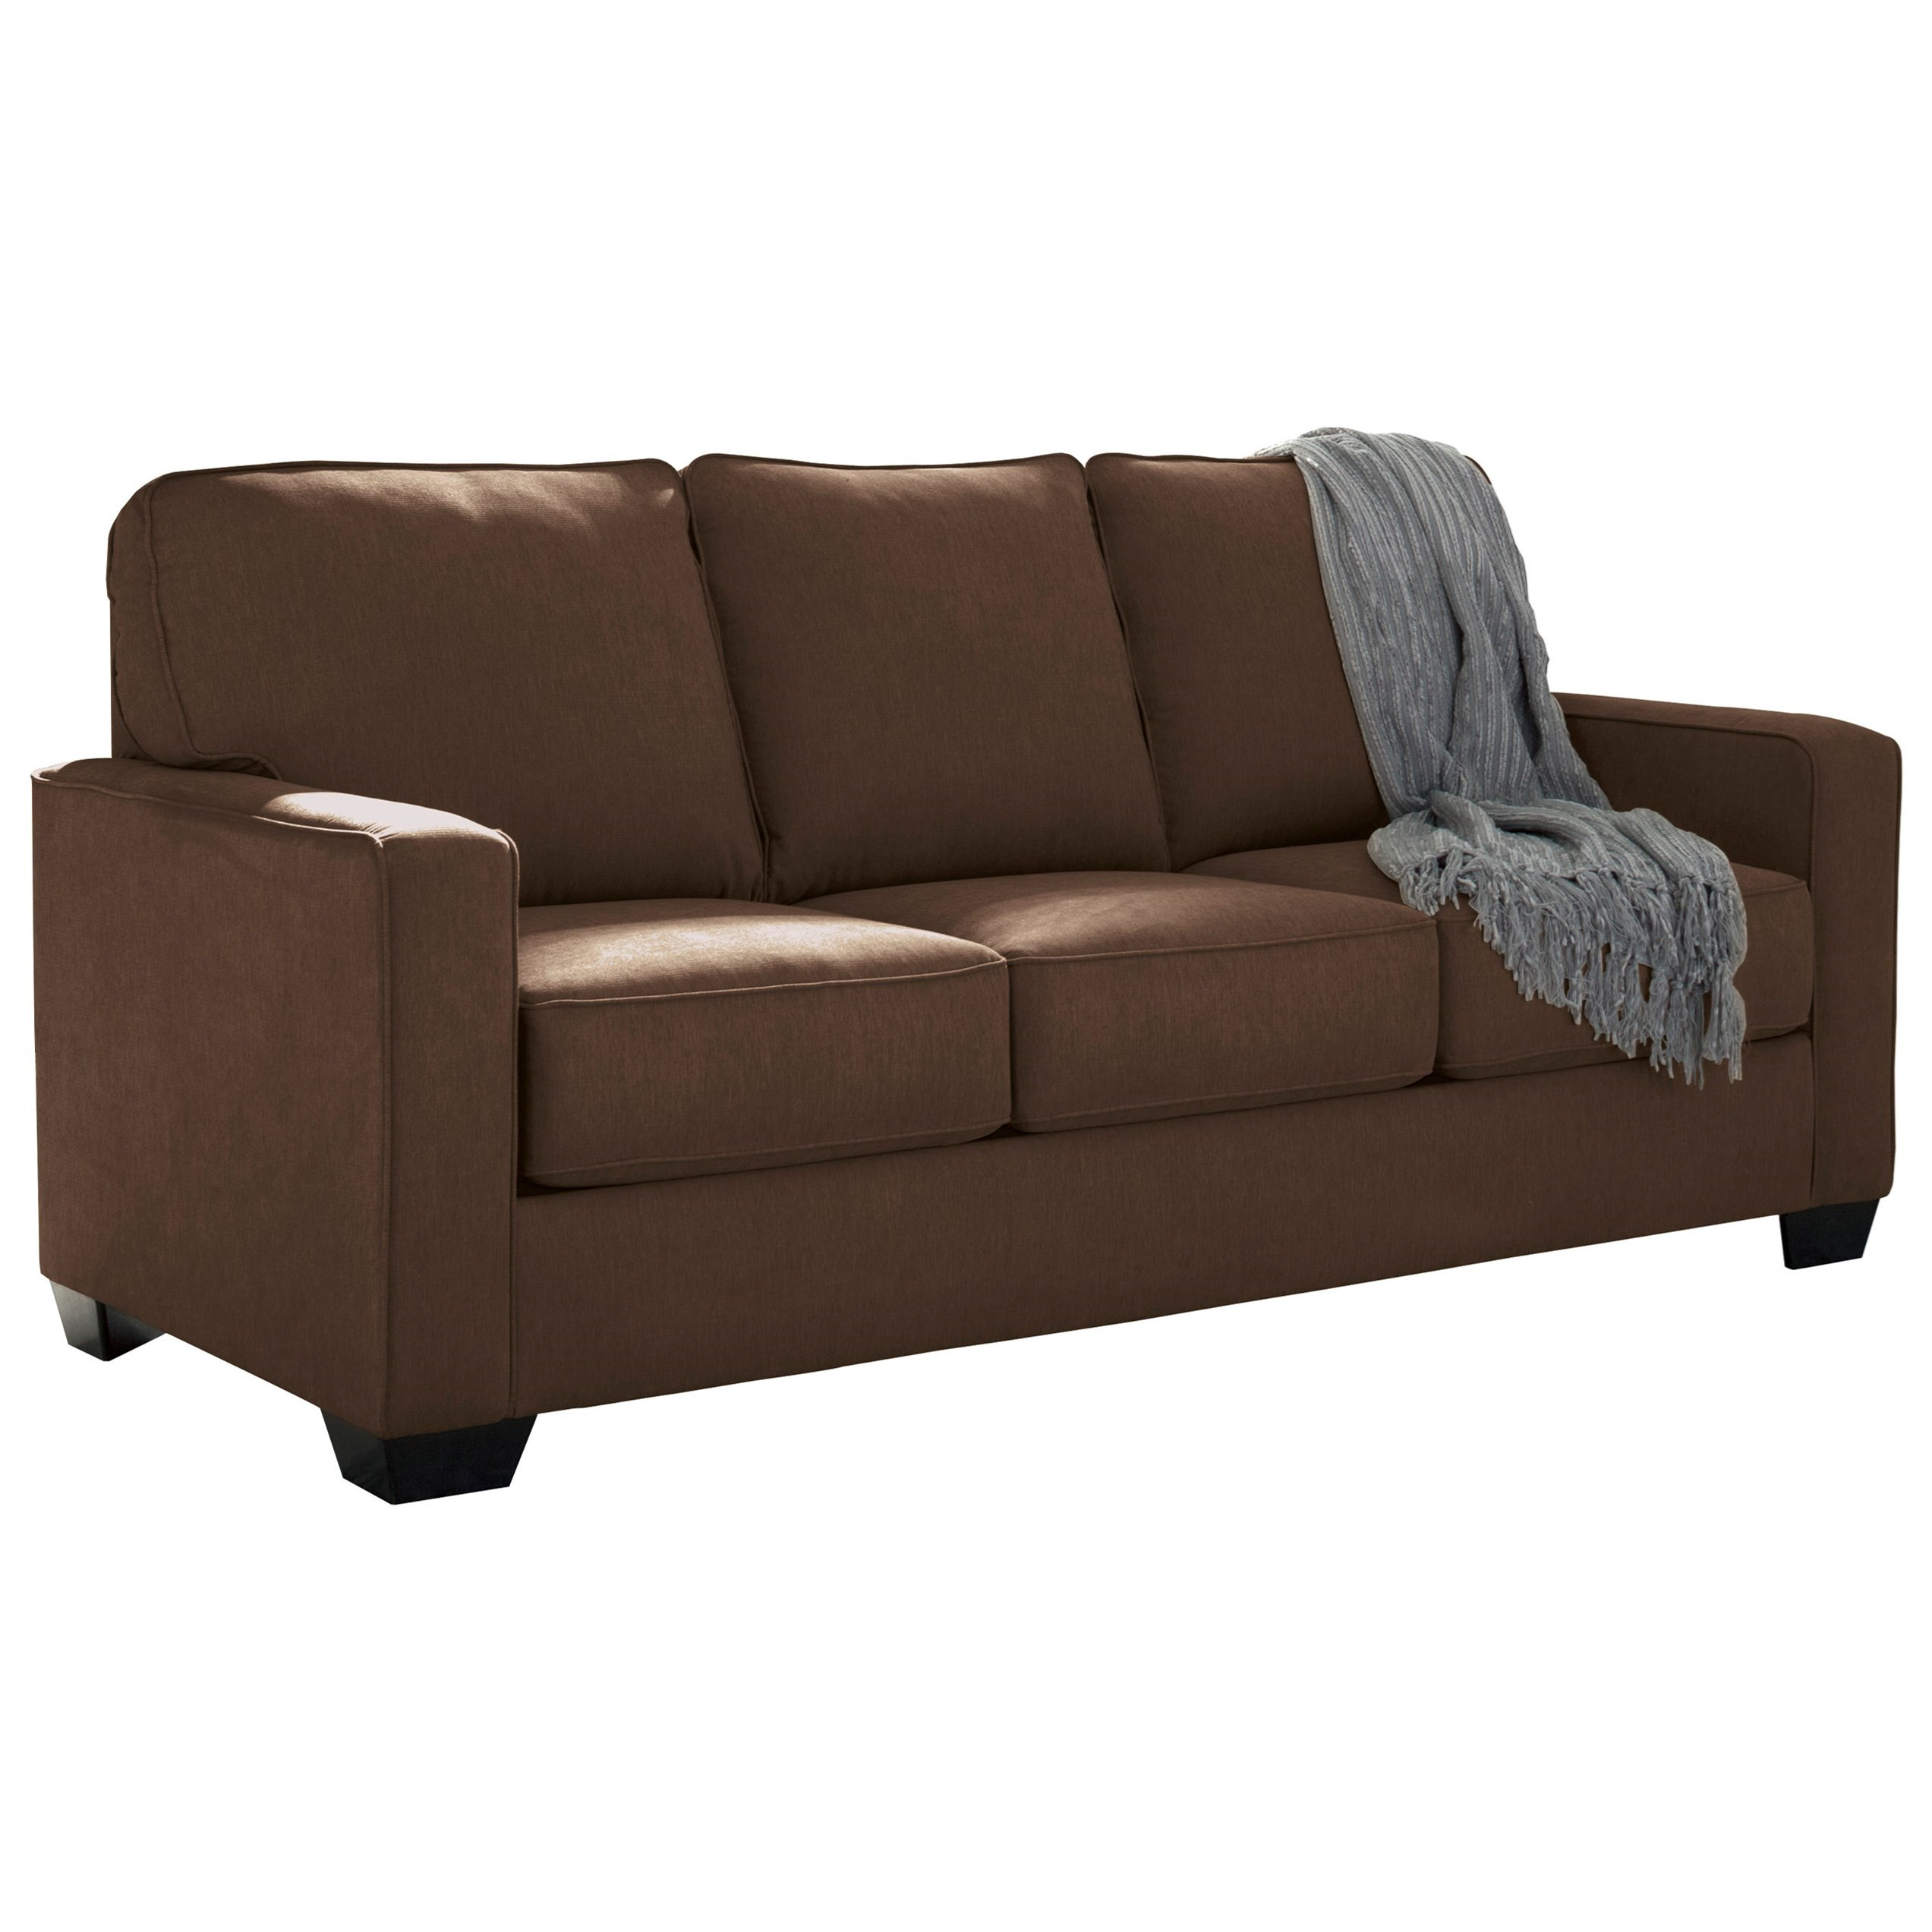 Twin Pull Out Couch